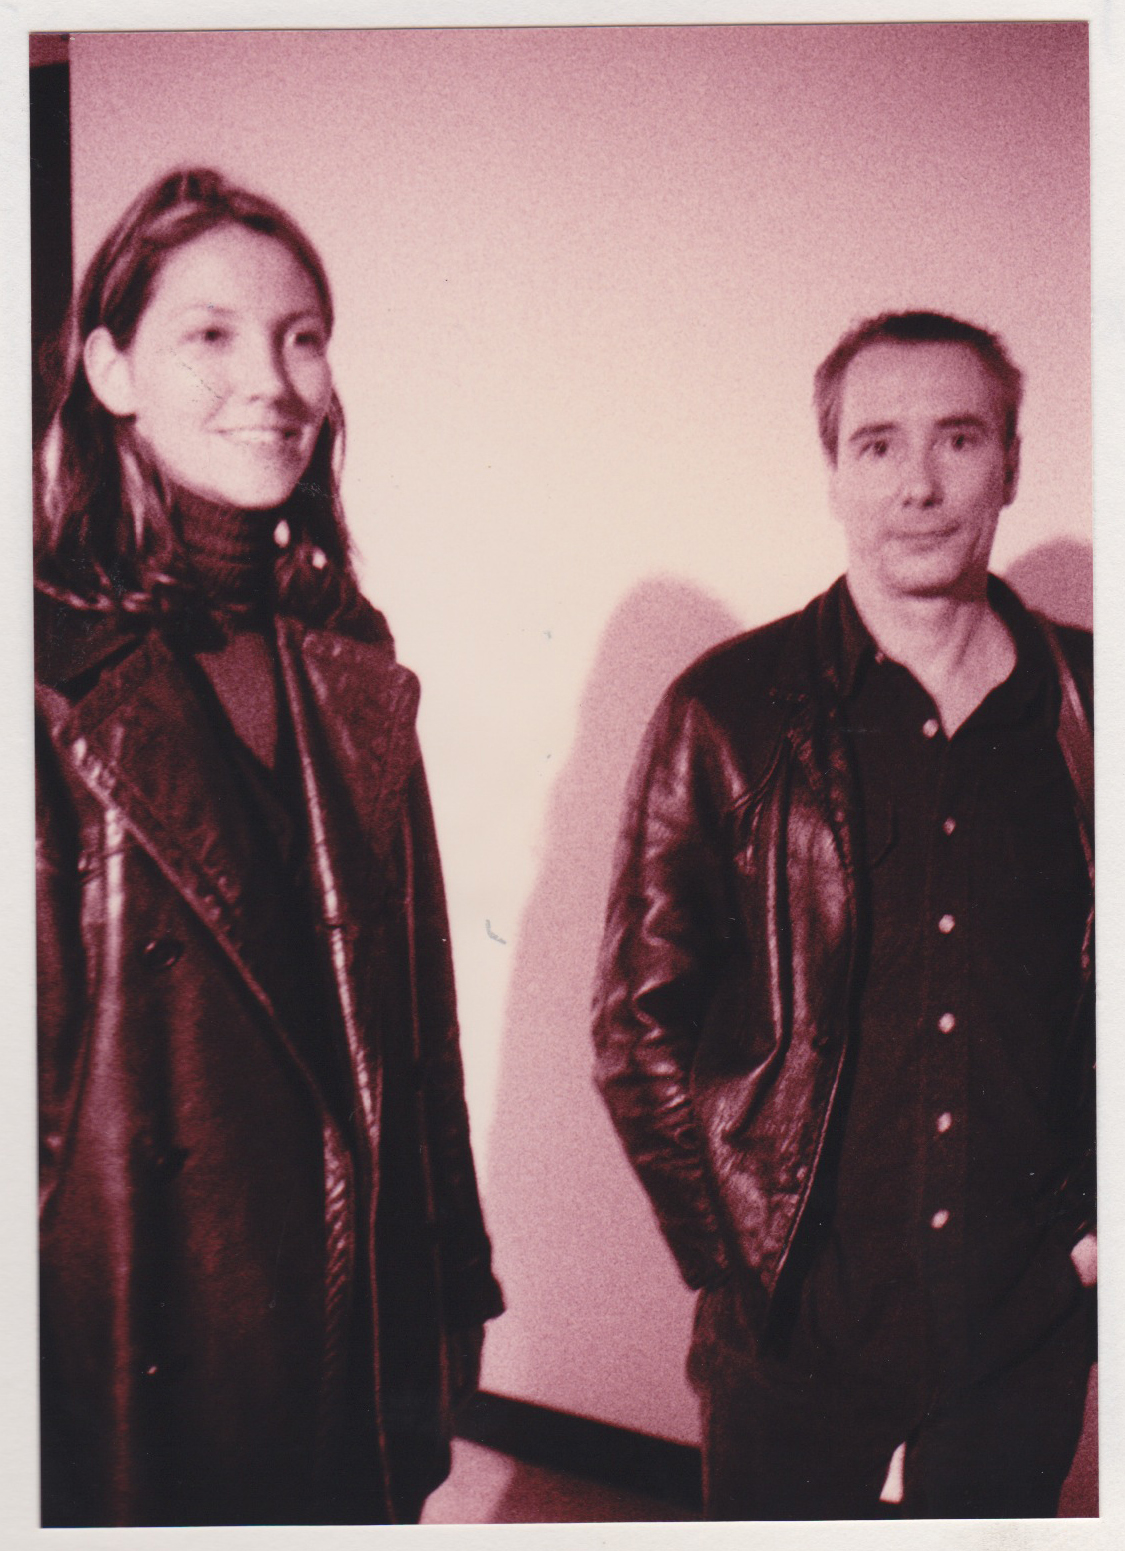 0977_night_liz_larner_mike_kelley_19940329_accd_marlos.jpg